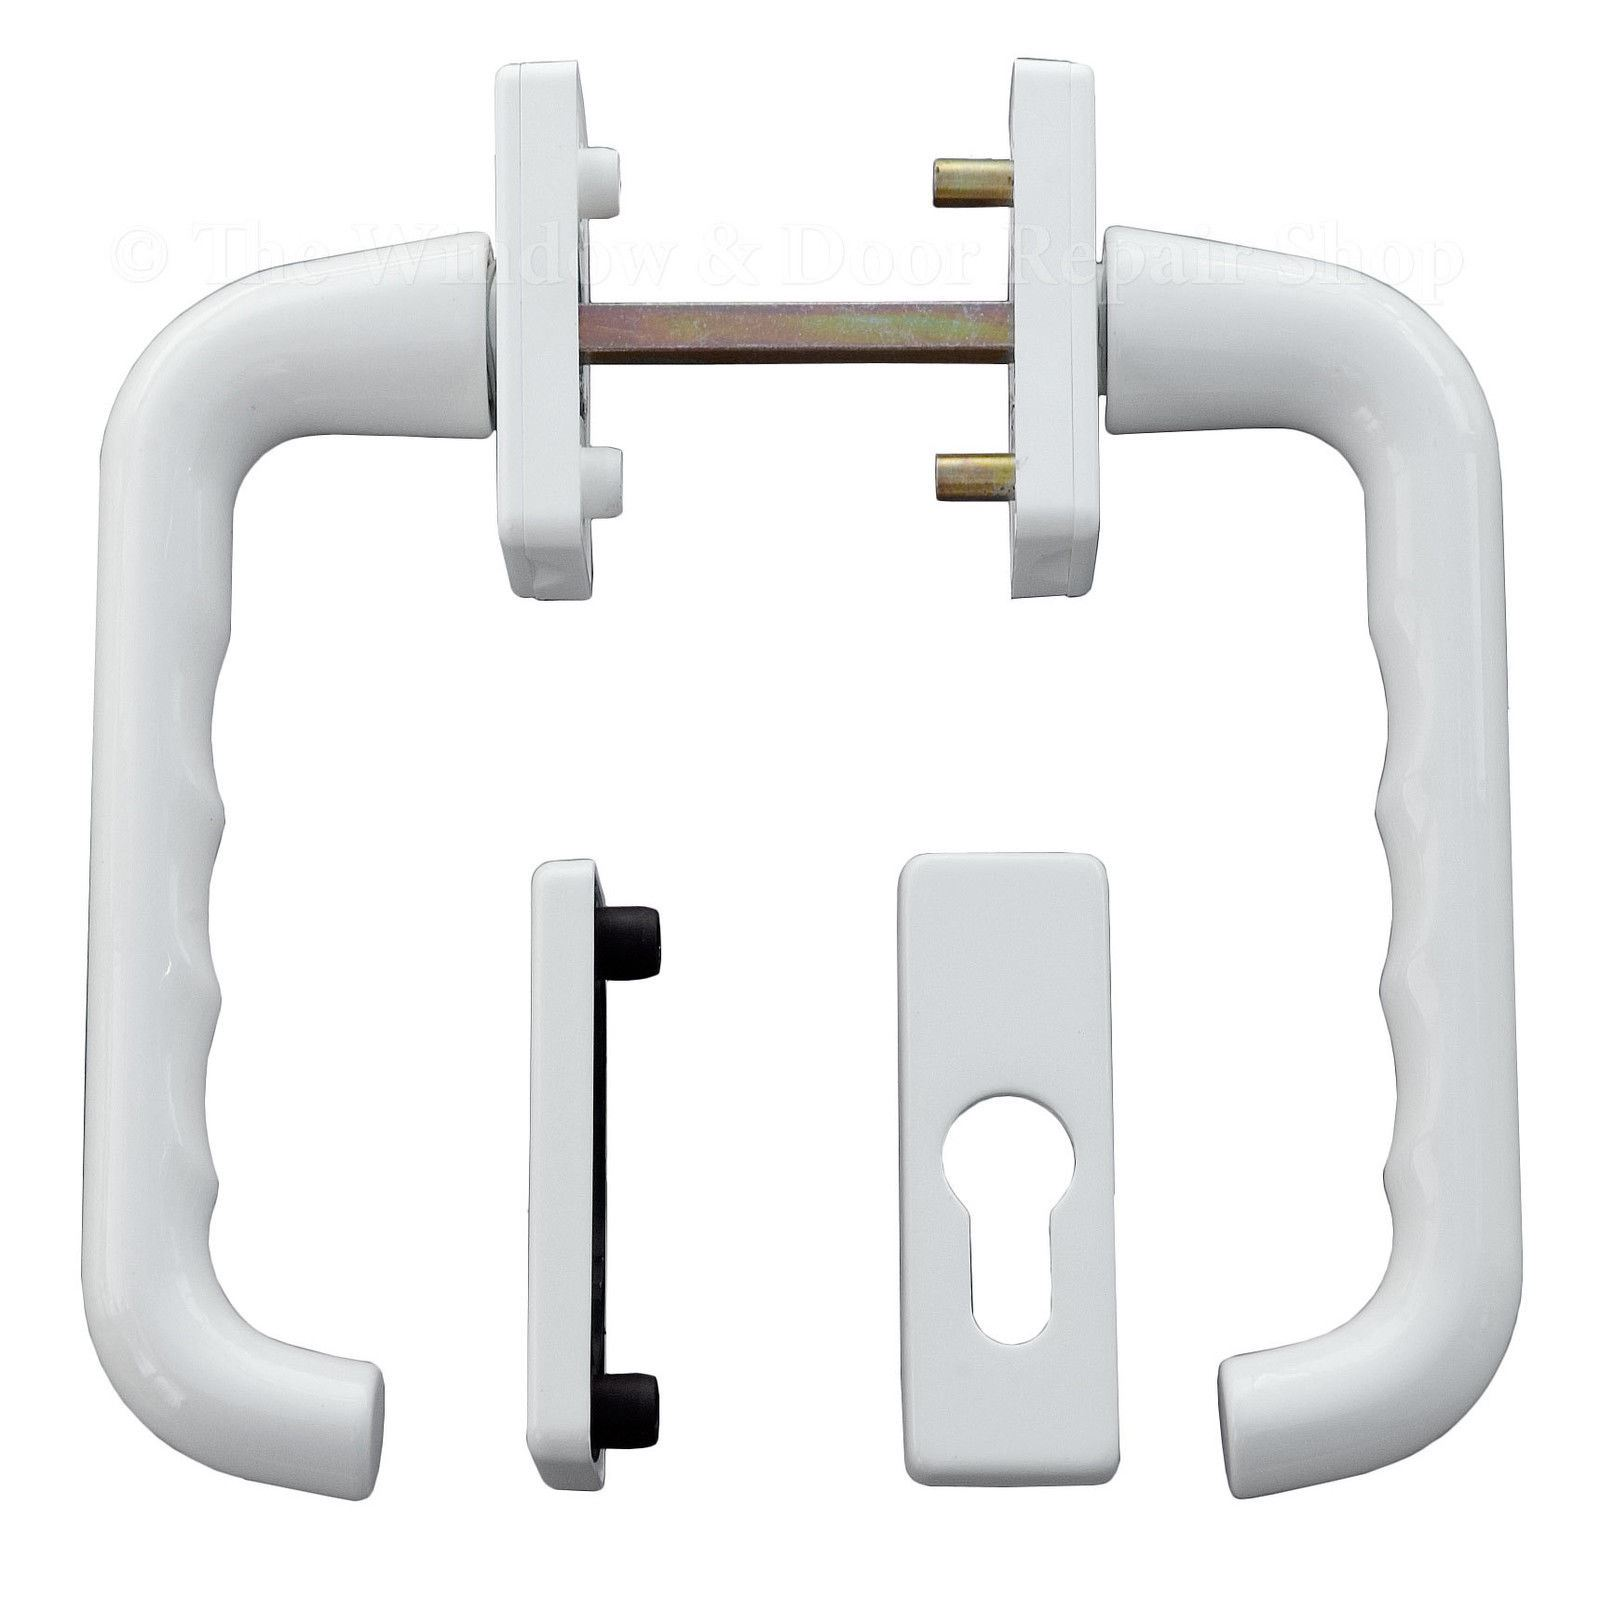 Tilt Amp Slide Patio Door Handle Set For